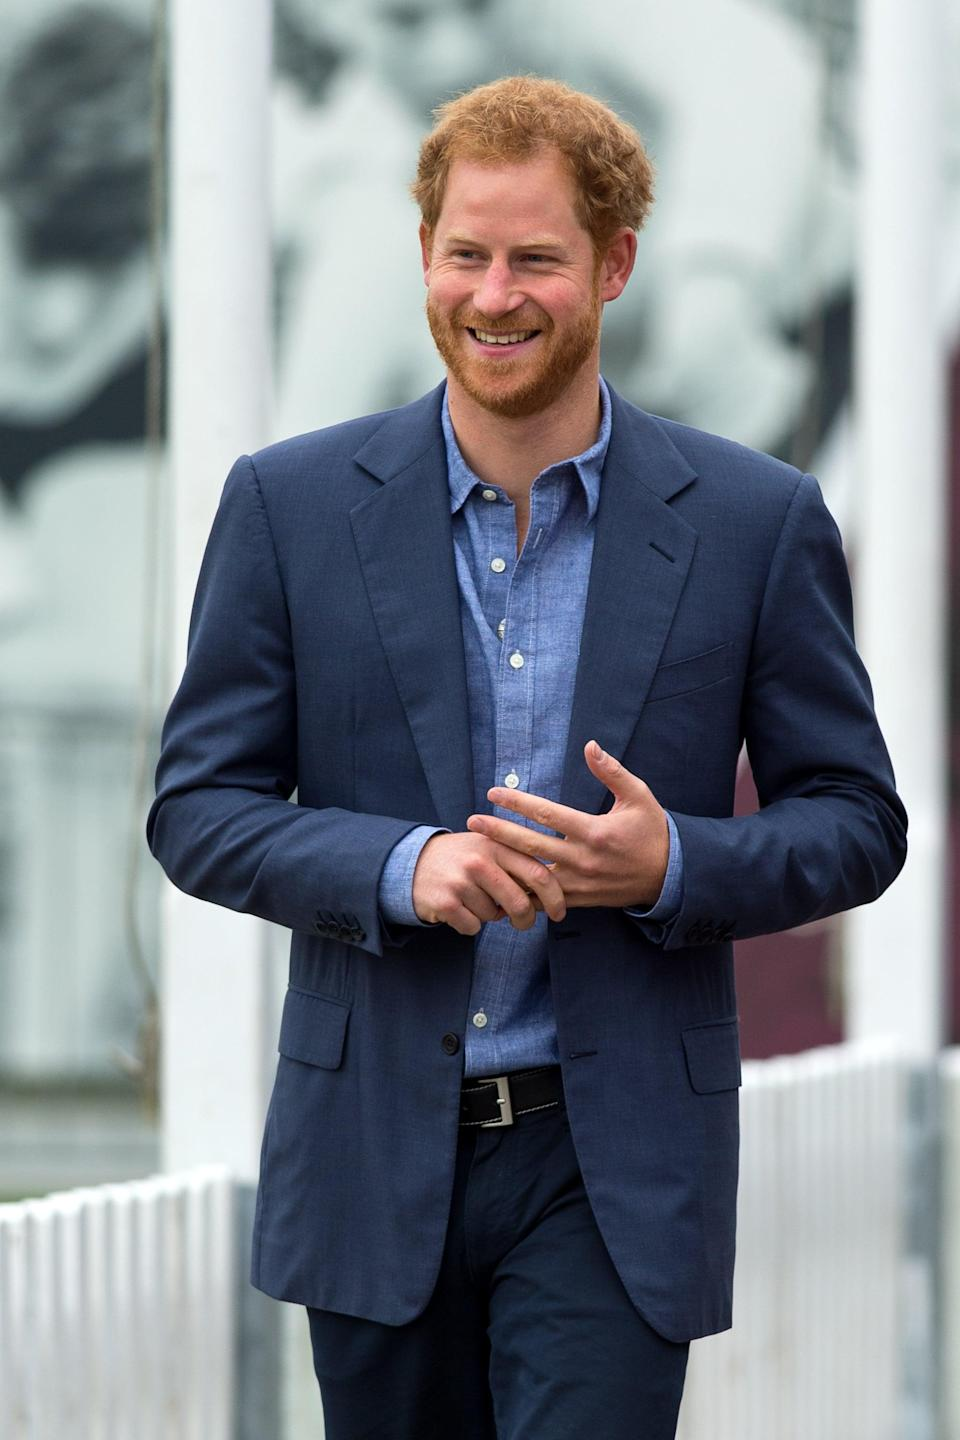 "<p>In March 2021, it was announced that <a href=""https://www.popsugar.com/celebrity/prince-harry-lands-chief-impact-officer-at-betterup-48232298"" class=""link rapid-noclick-resp"" rel=""nofollow noopener"" target=""_blank"" data-ylk=""slk:Harry is now the chief impact officer"">Harry is now the chief impact officer</a> of San Francisco-based wellness startup BetterUp. The company provides professional coaching and mental health advice, and in a statement to the <strong>Wall Street Journal</strong>, the duke stated that he intends to ""help create impact in people's lives."" Harry added, ""Proactive coaching provides endless possibilities for personal development, increased awareness, and an all-round better life.""</p> <p>In his role as chief impact officer, Harry will reportedly have input on initiatives that include product strategy decisions and charitable contributions. He'll also be able to advocate publicly on topics related to mental health, which we know is a cause close to his heart.</p>"